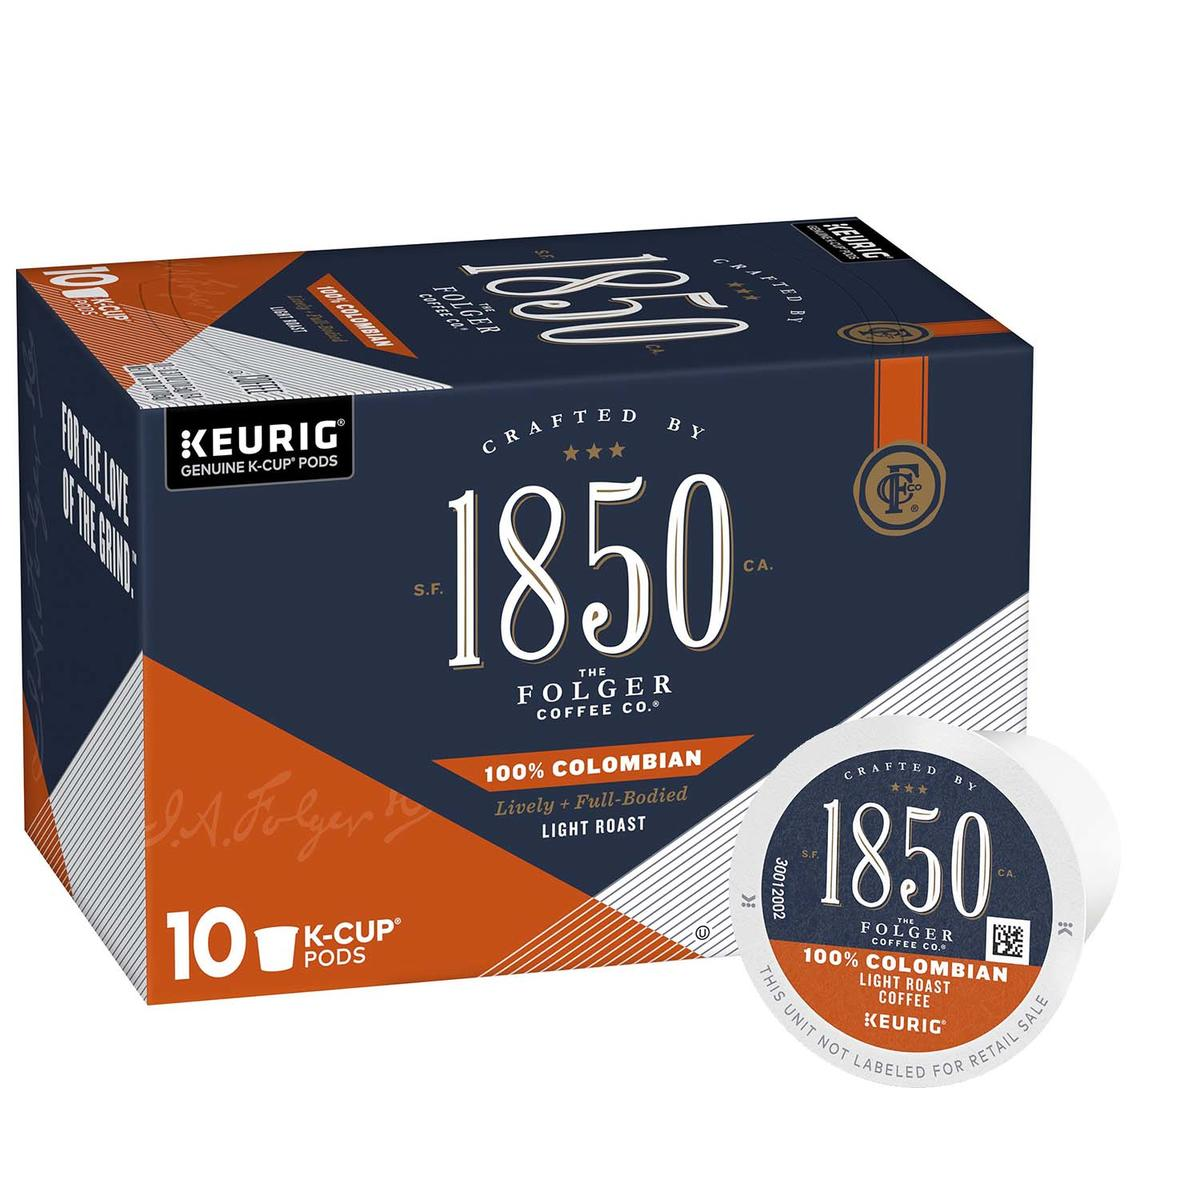 Folgers 1850 medium-roast coffee, Colombian variety, 10 count box of k cups